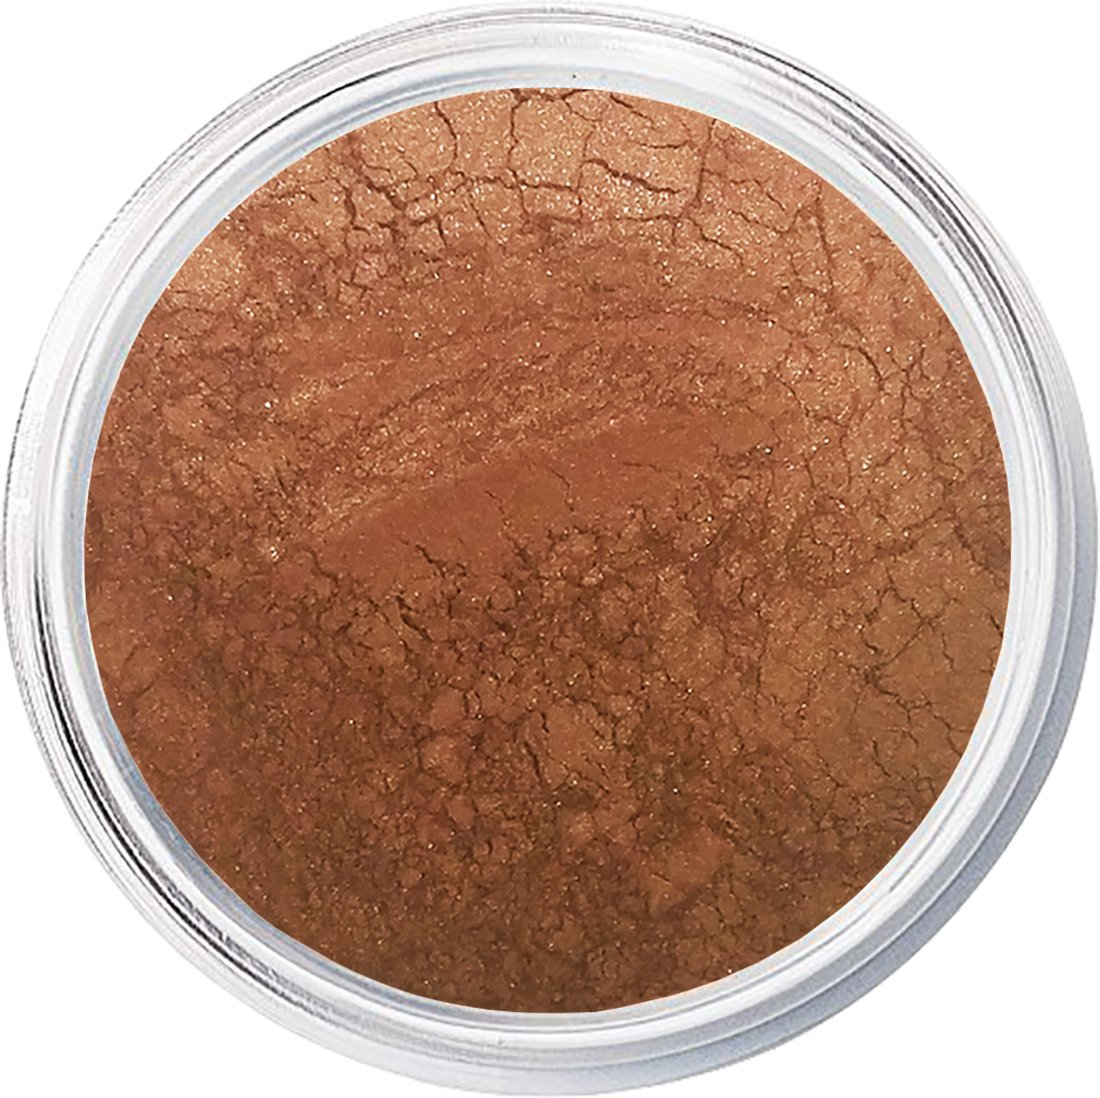 Bronzer – Gold Digger | Mineral Makeup by Giselle Cosmetics | Pure, Non-Diluted Mineral Make Up B0761YK2KM